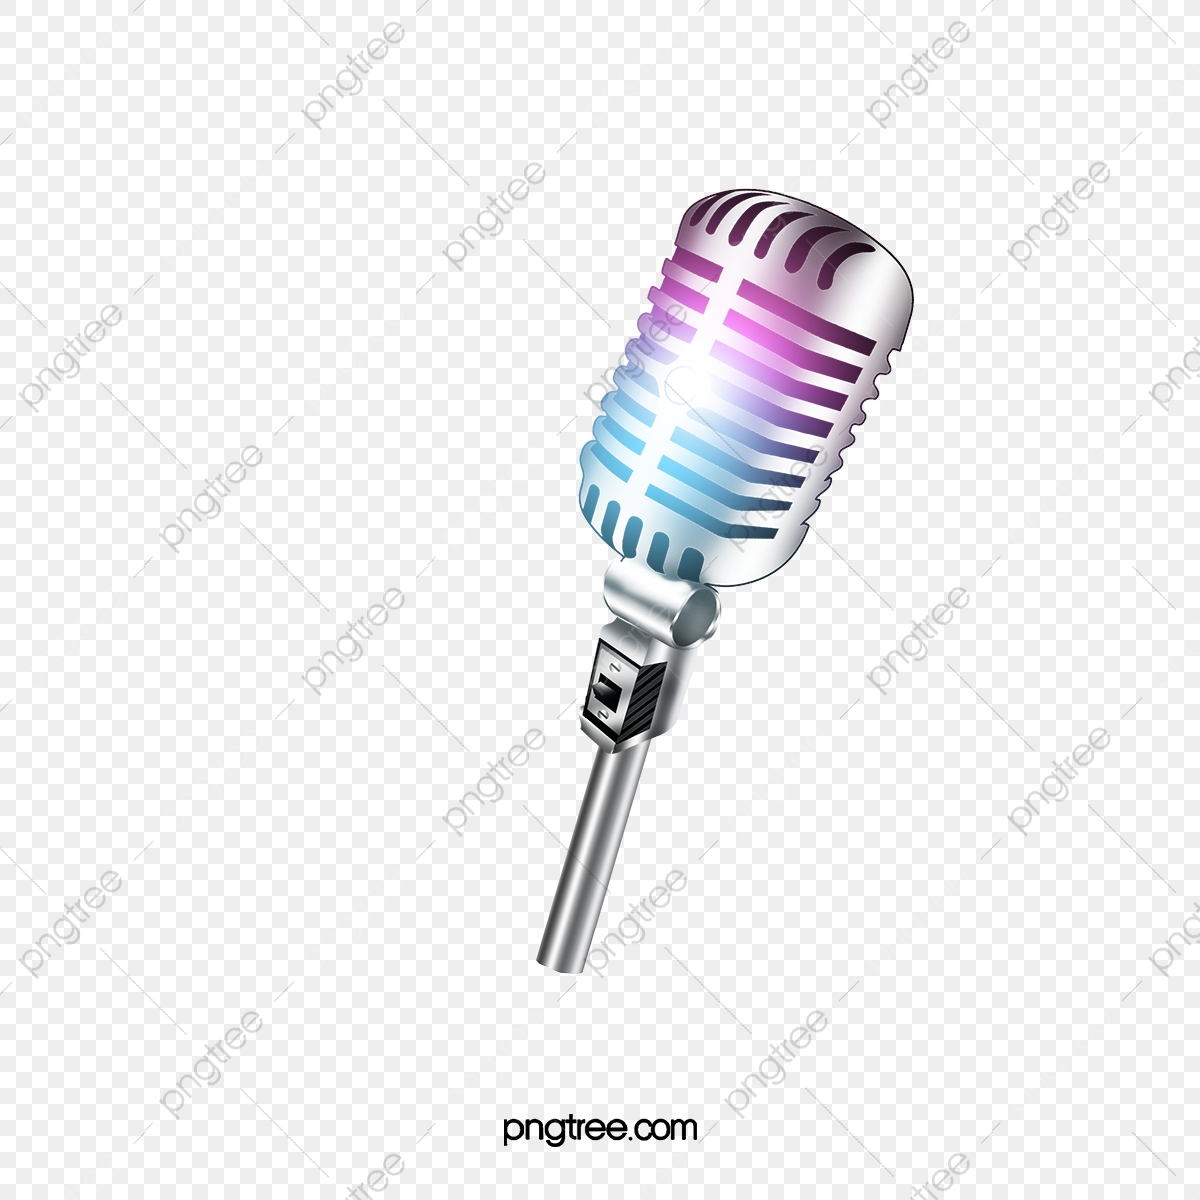 mic transparent background - microphone clipart transparent background PNG  image with transparent background   TOPpng